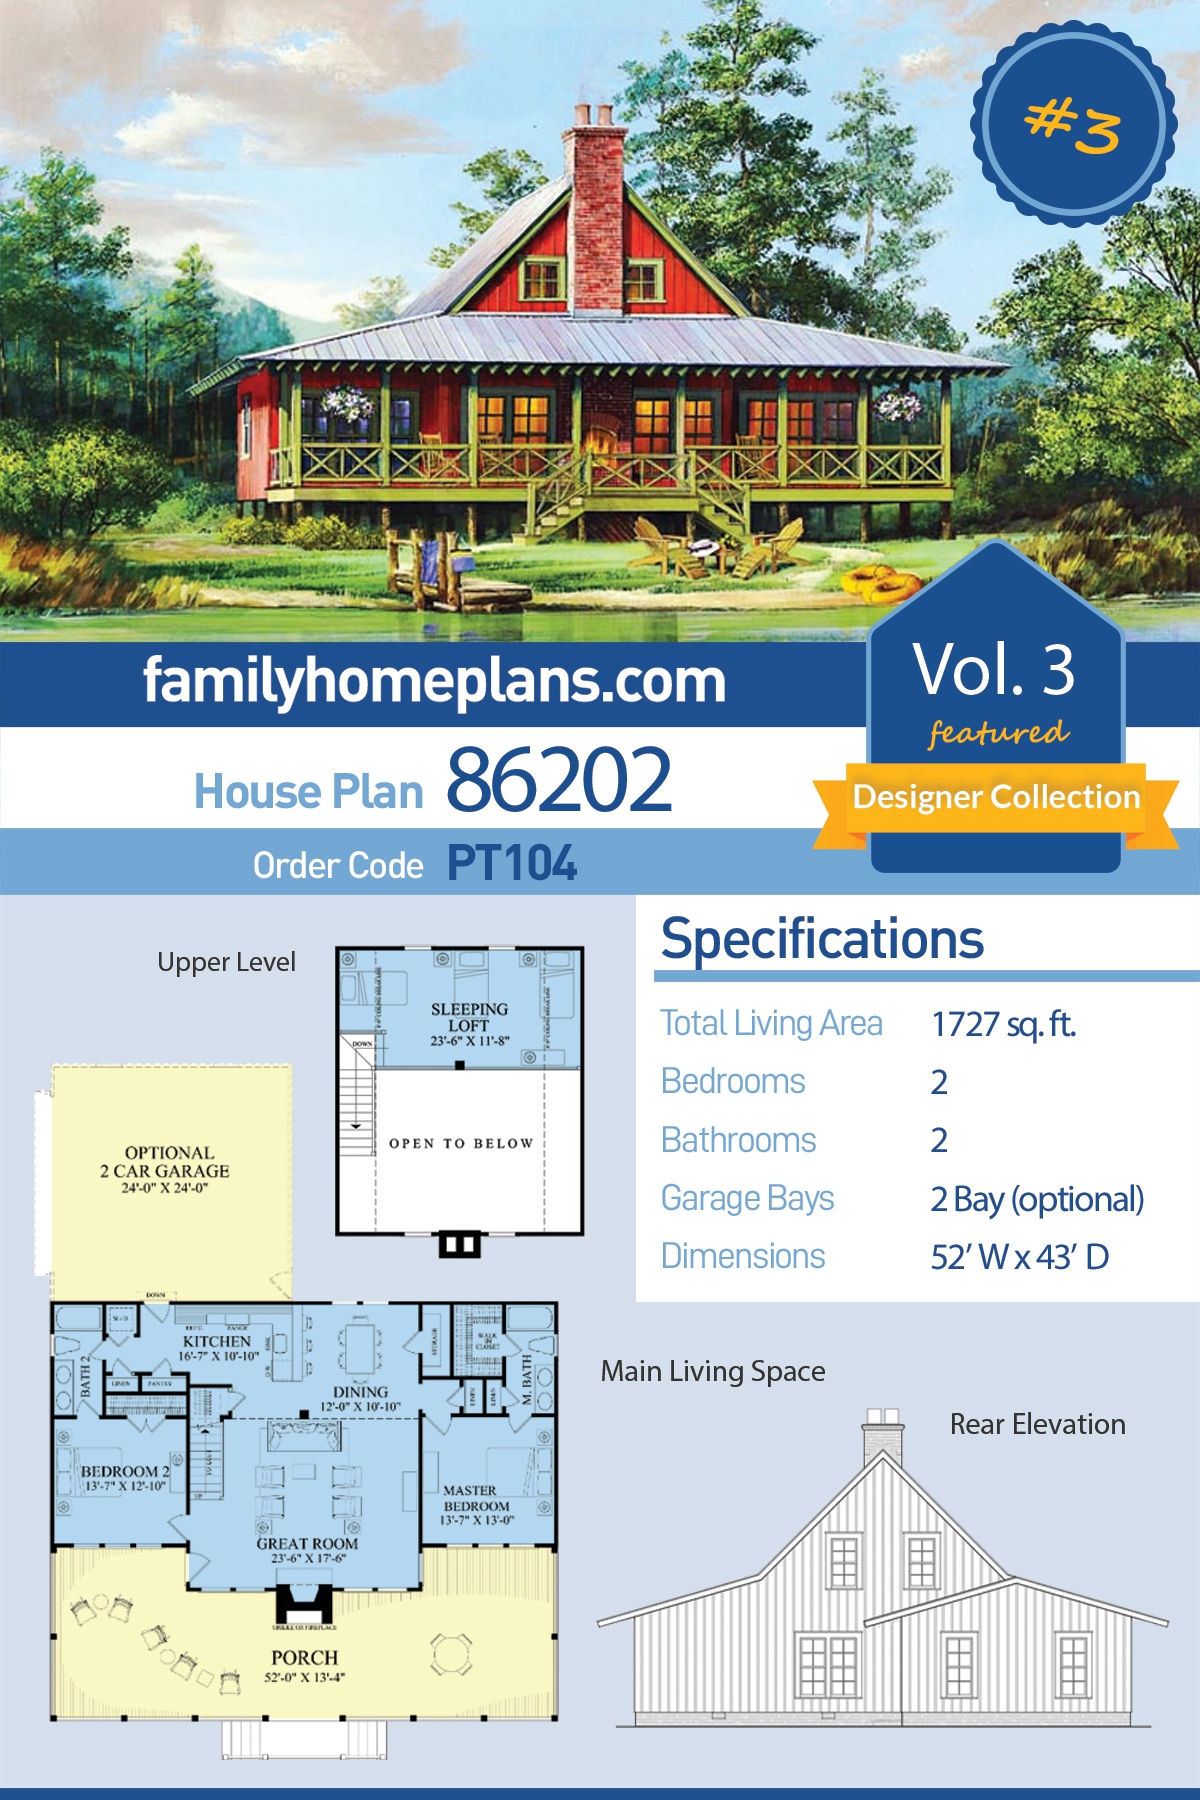 Cabin, Contemporary, Country, Southern House Plan 86202 with 2 Beds, 2 Baths, 2 Car Garage